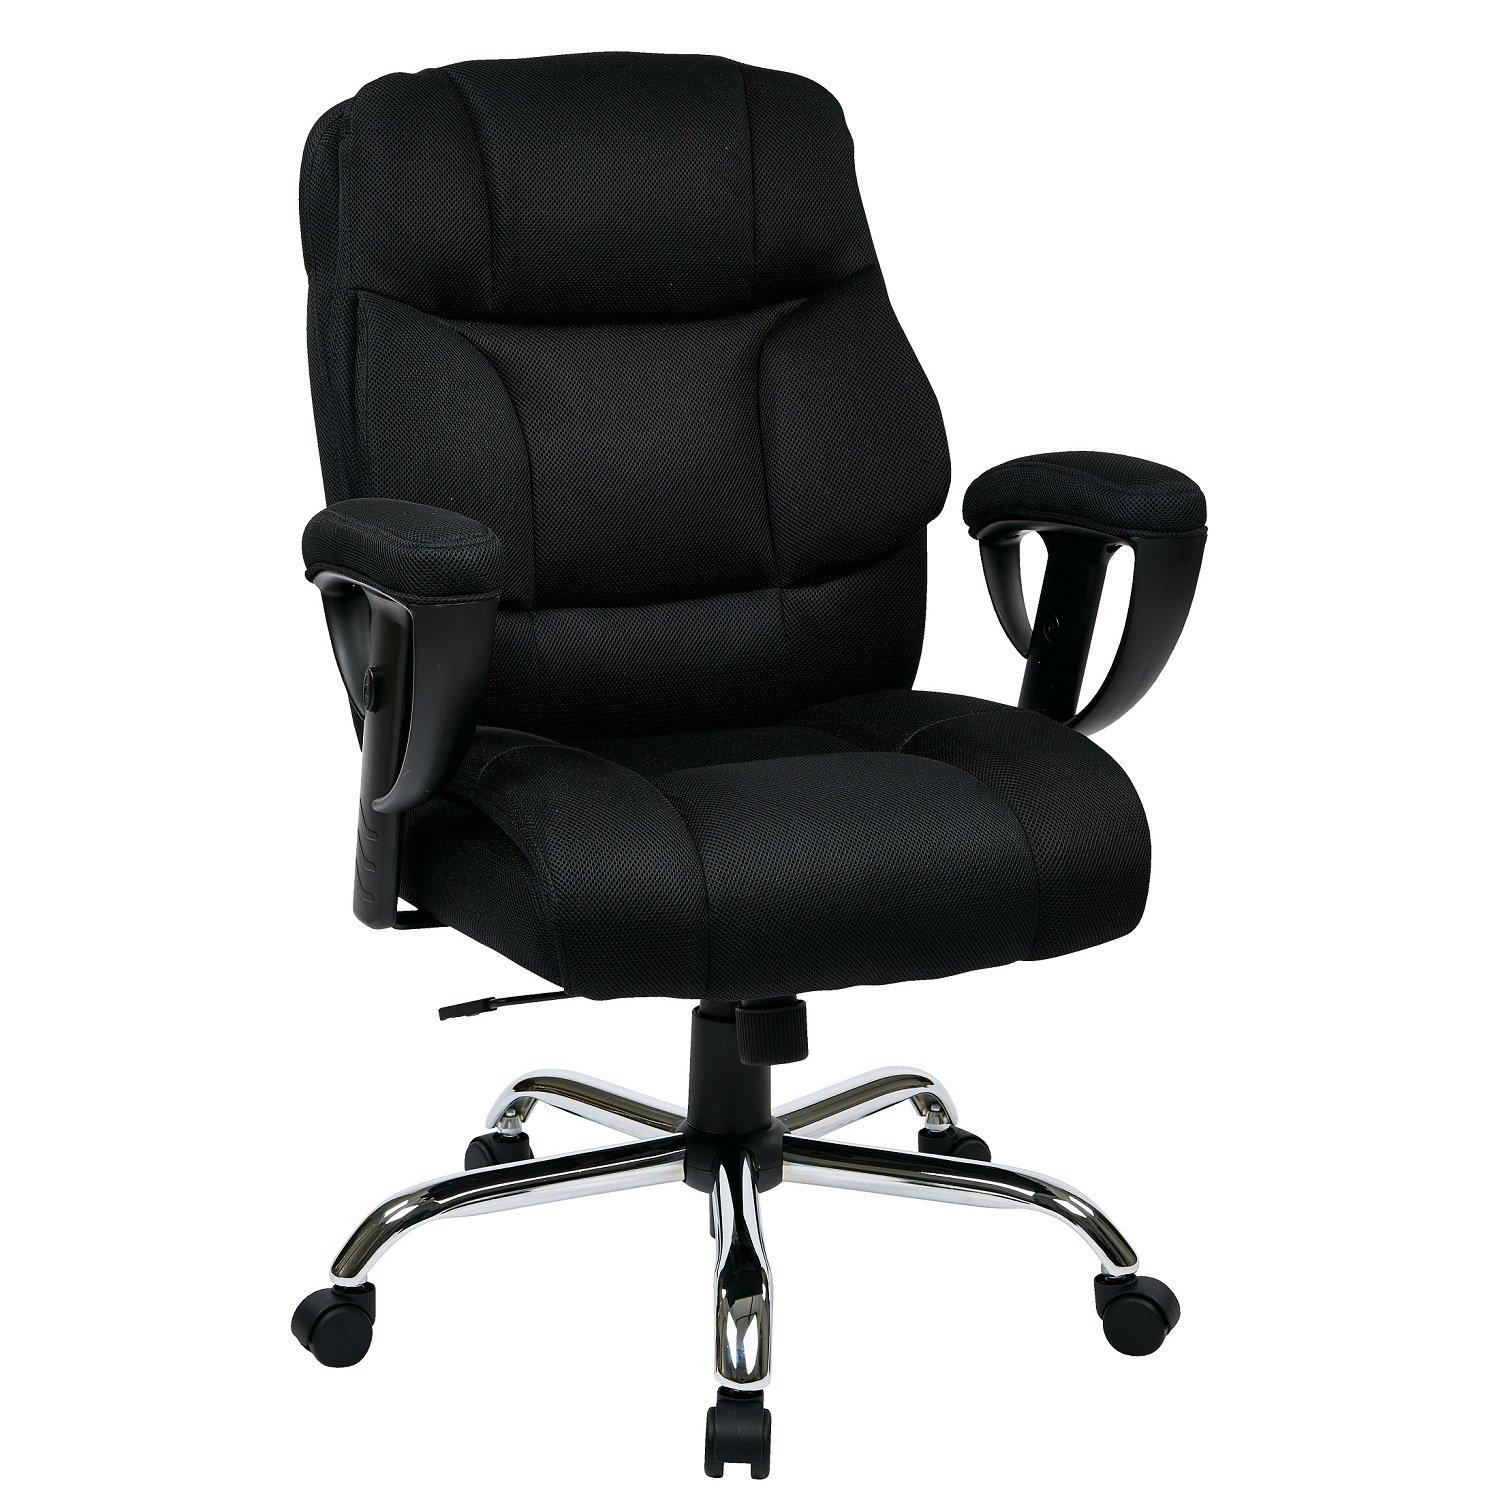 Executive Big Man's Chair with Mesh Seat and Back